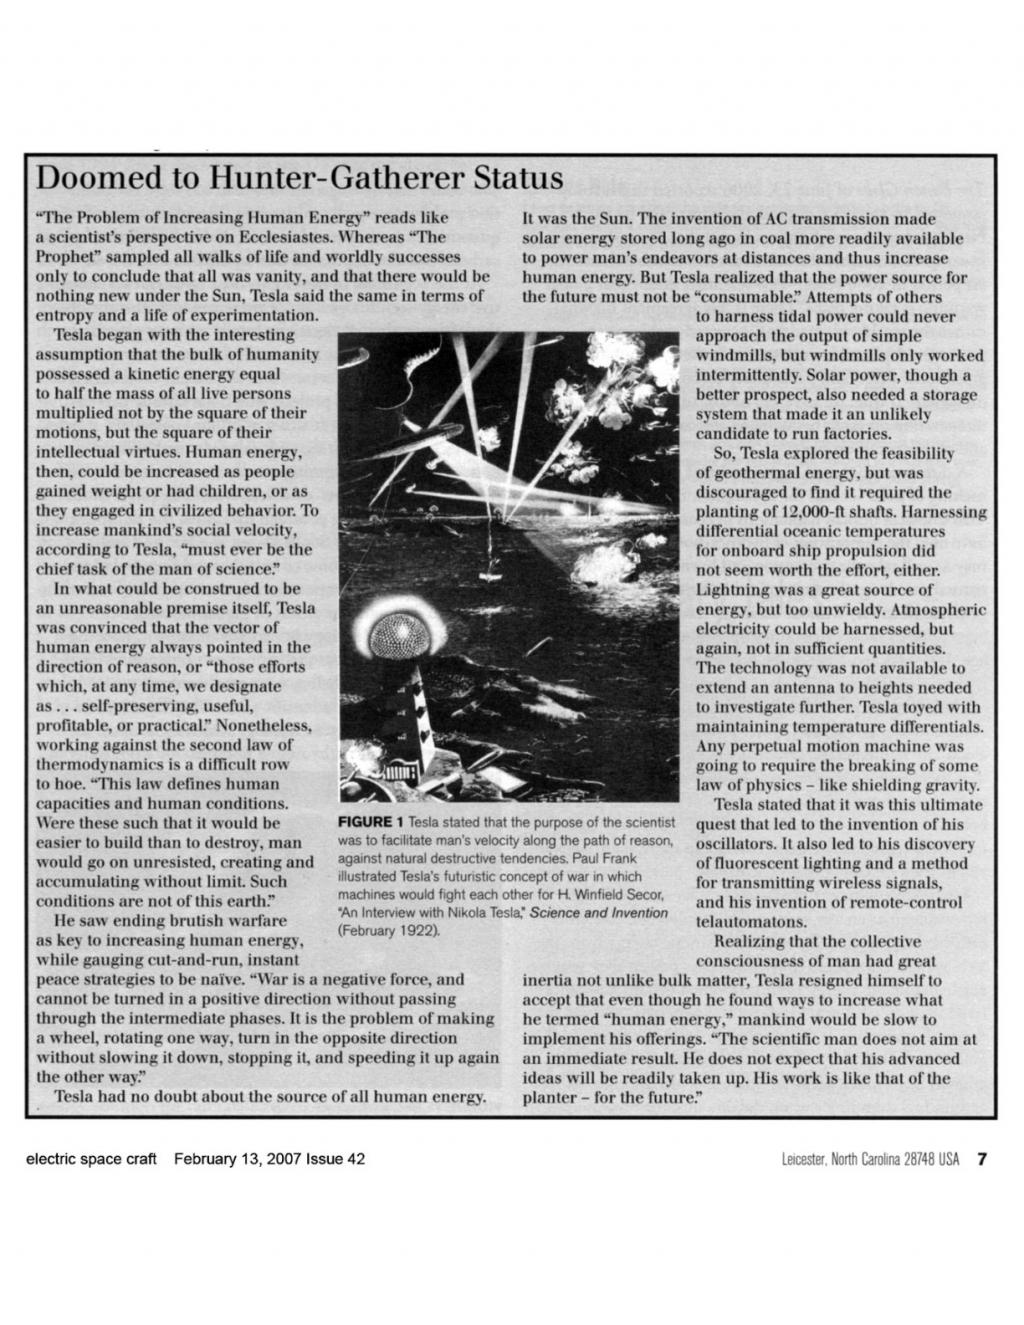 Preview of Doomed to Hunter-Gatherer Status article